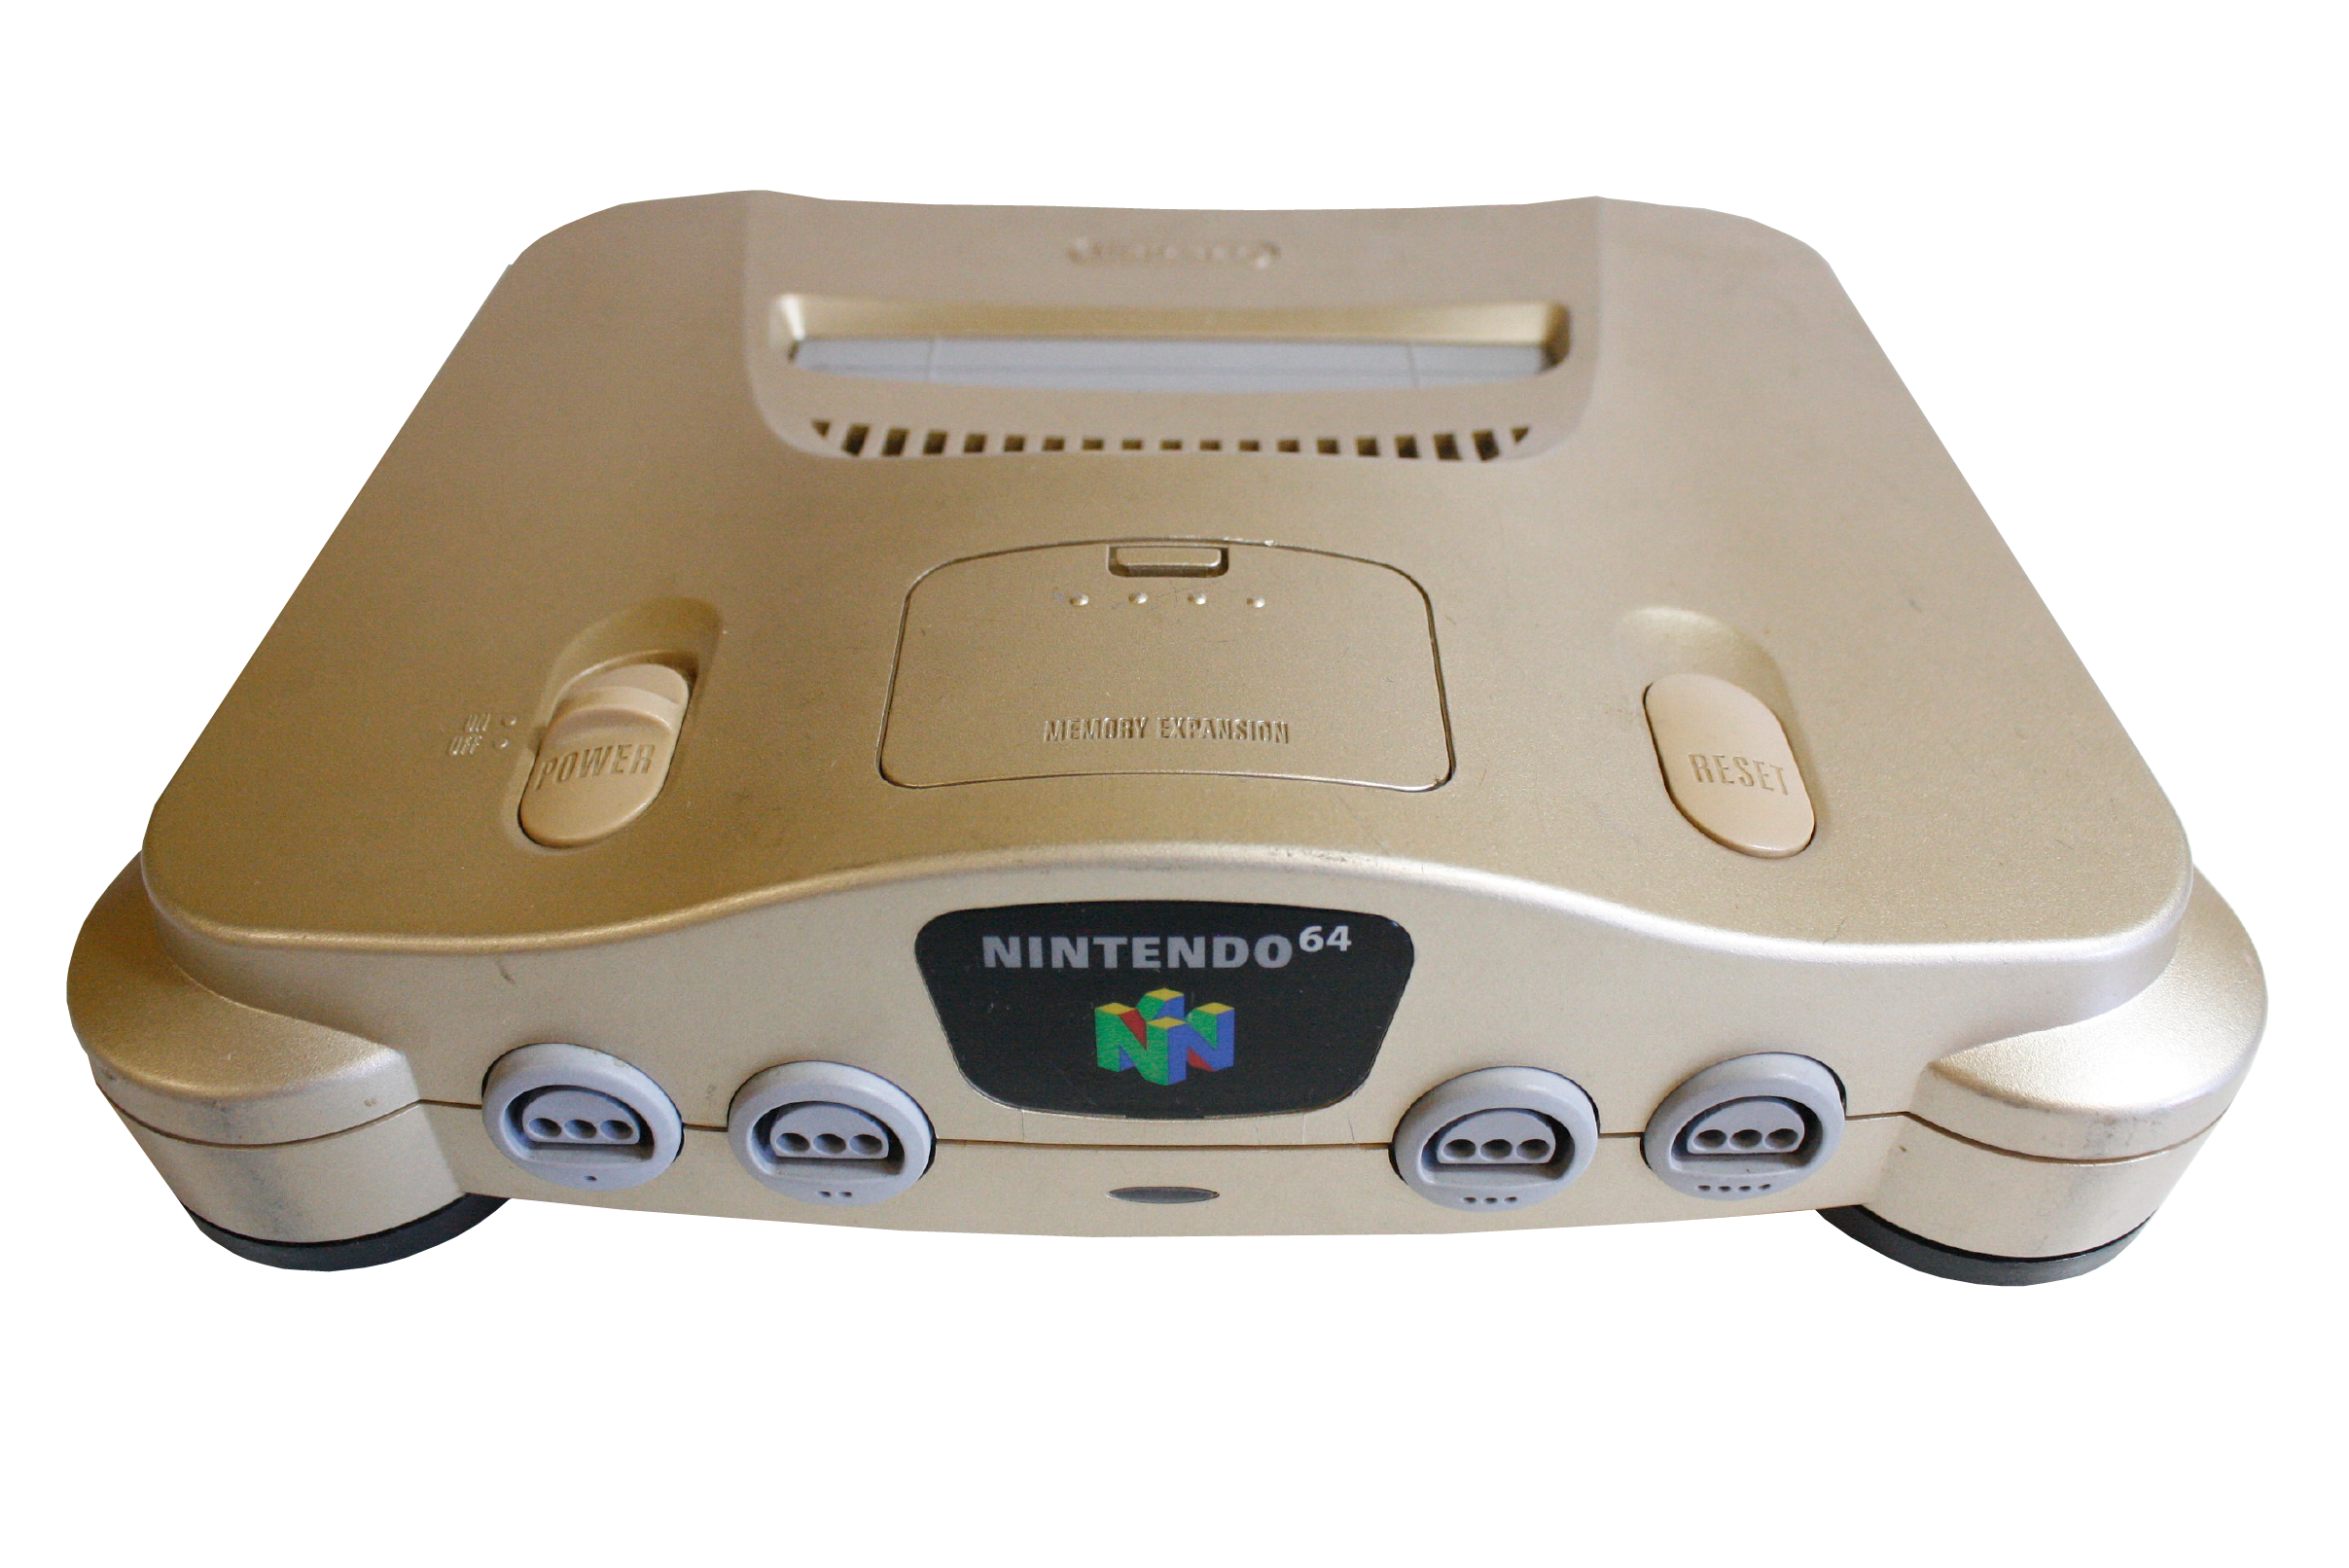 Nintendo 64 Gold Retropixl Retrogaming retro gaming Rare Console Collector Limited Edition Japan Import